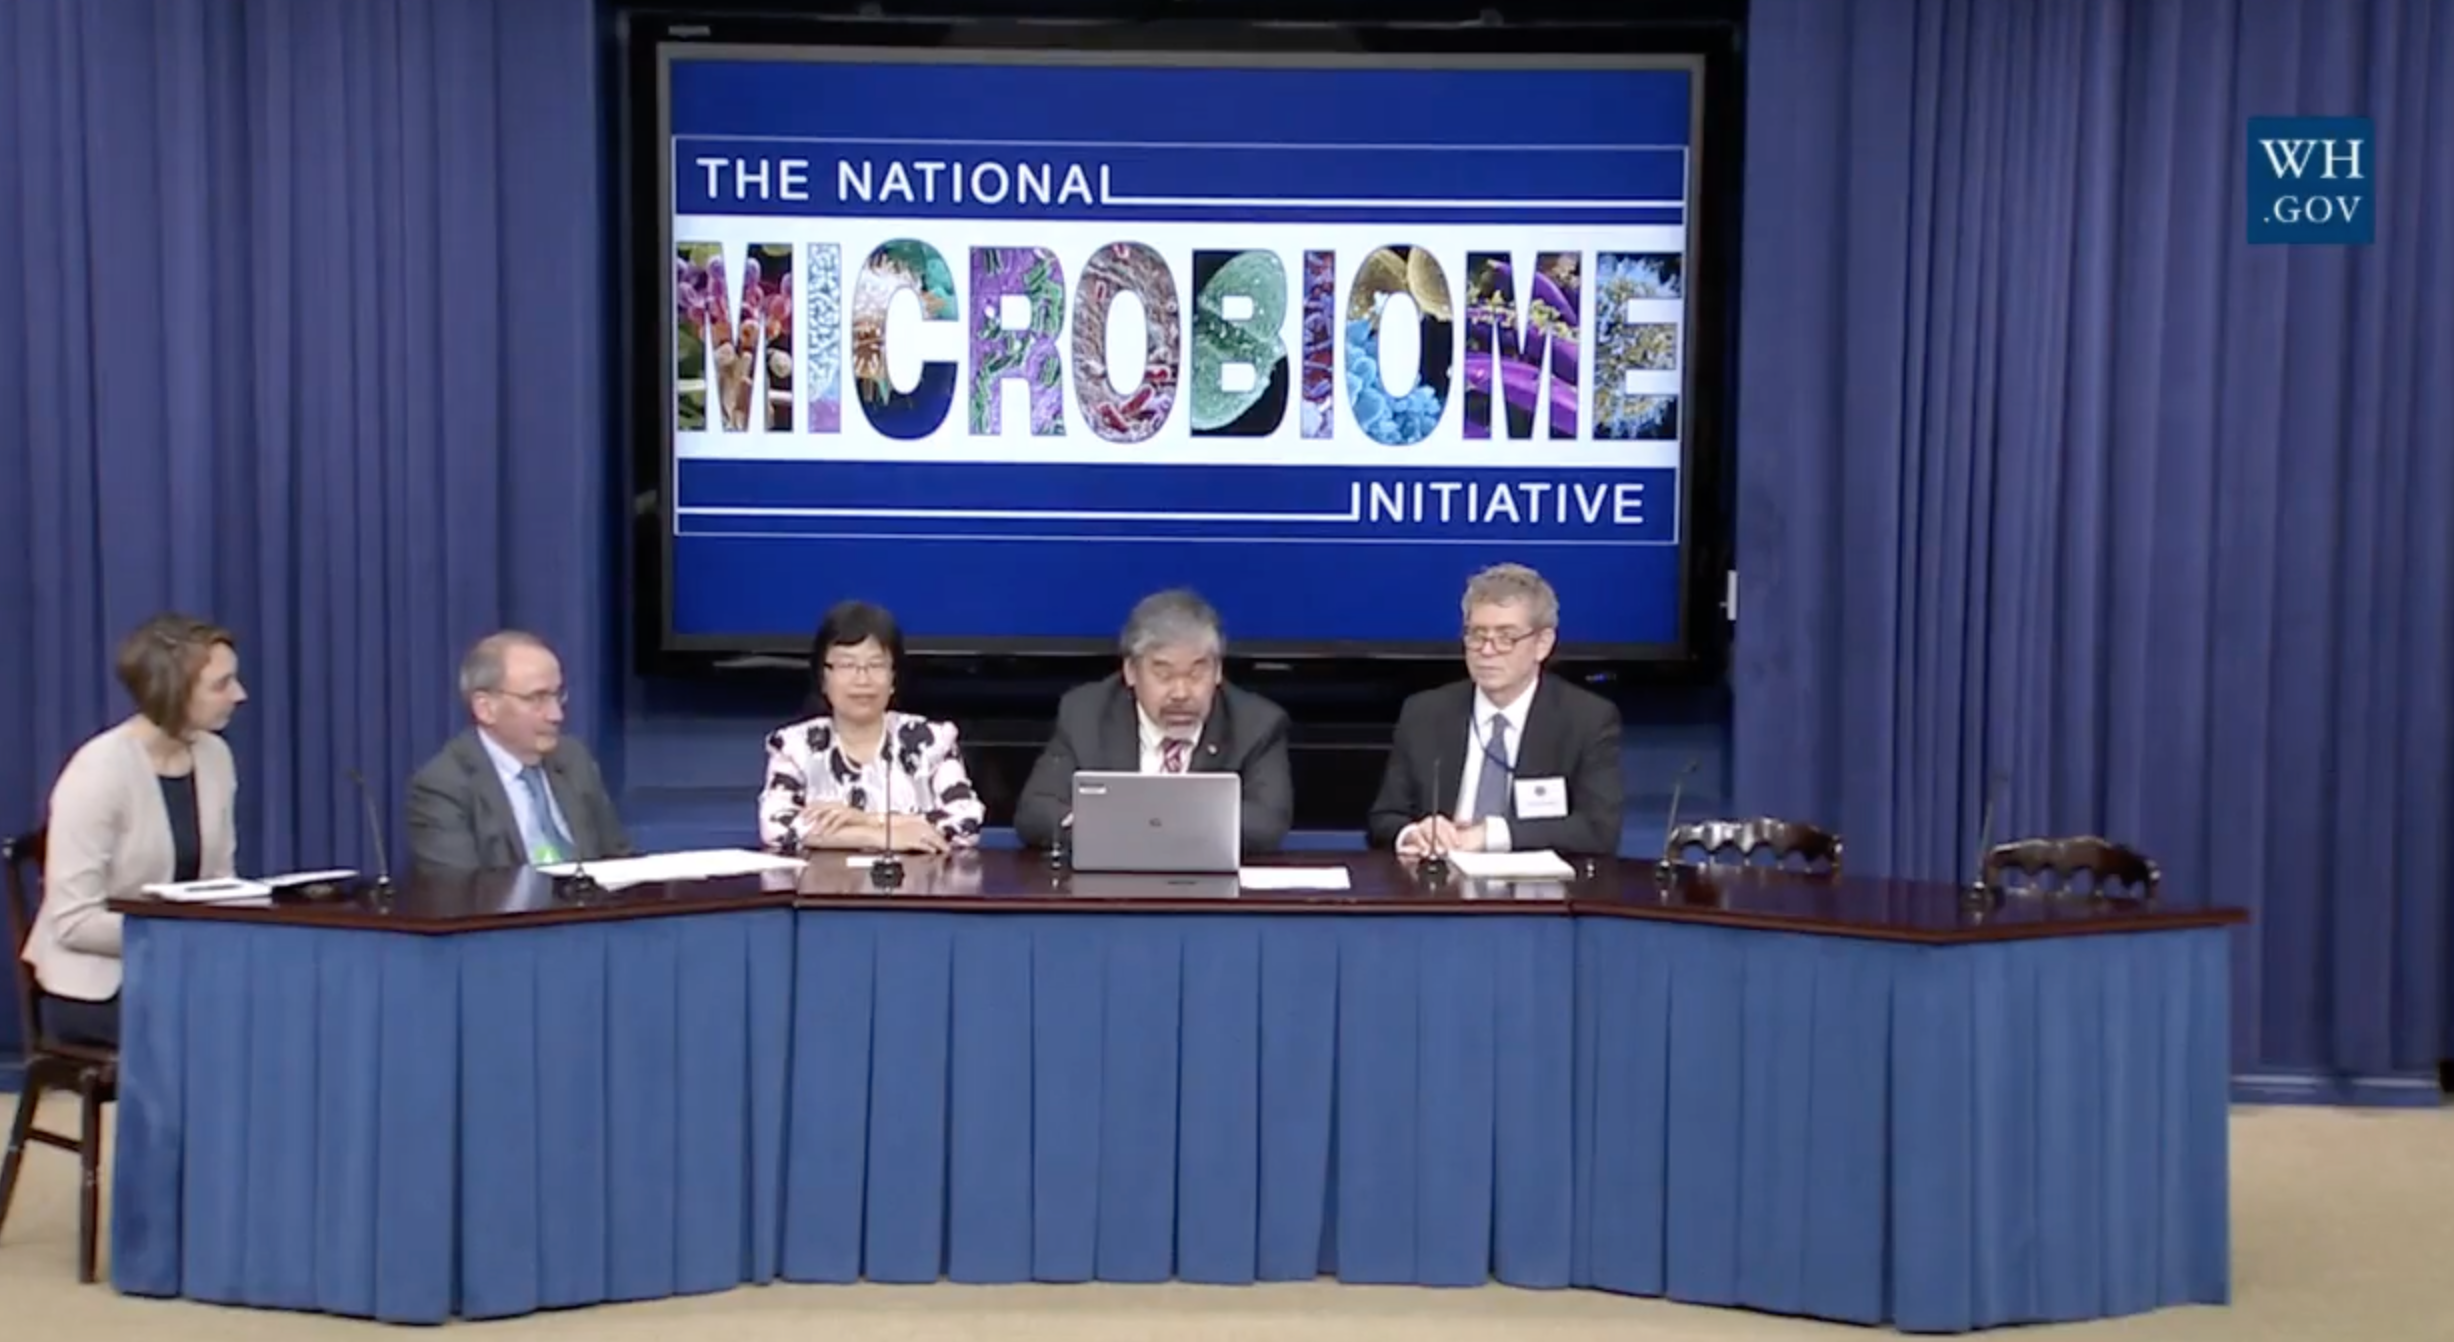 The White House announces $121 million Microbiome Initiative